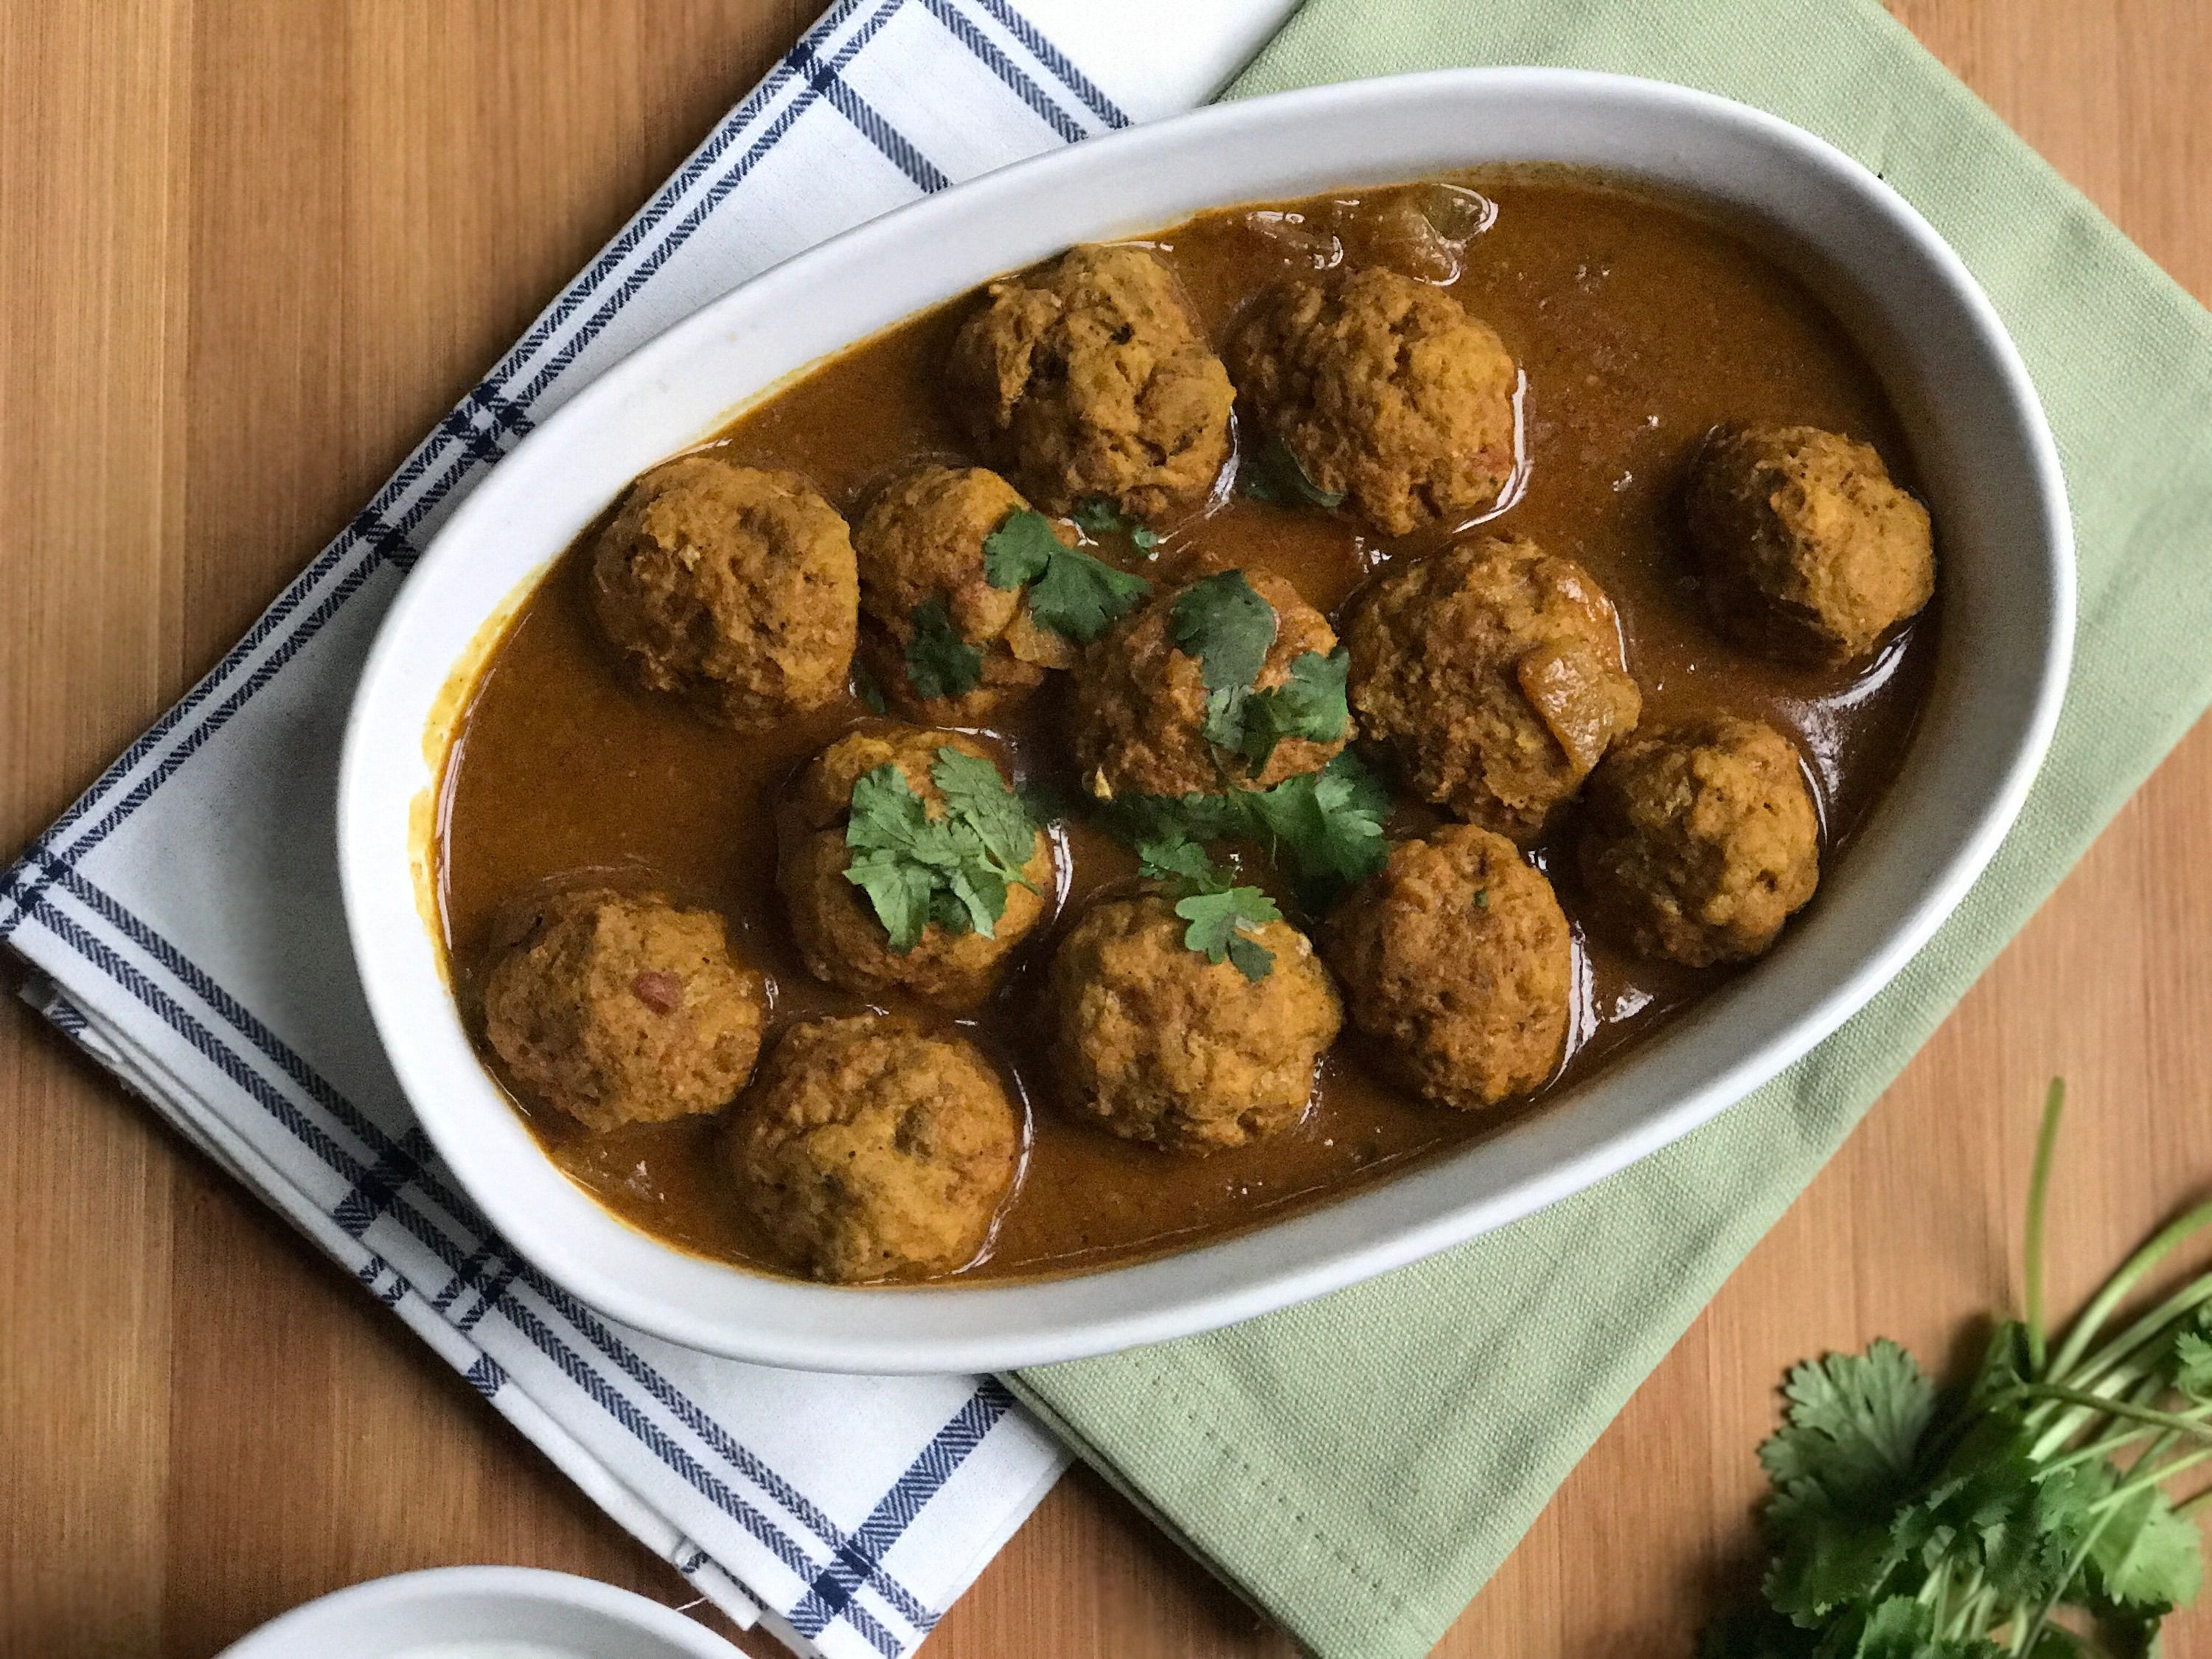 Chicken kofta curry recipe curry kofta curry recipe and dinners are you looking for a quick and simple dinner recipe chicken kofta meatball curry is forumfinder Choice Image